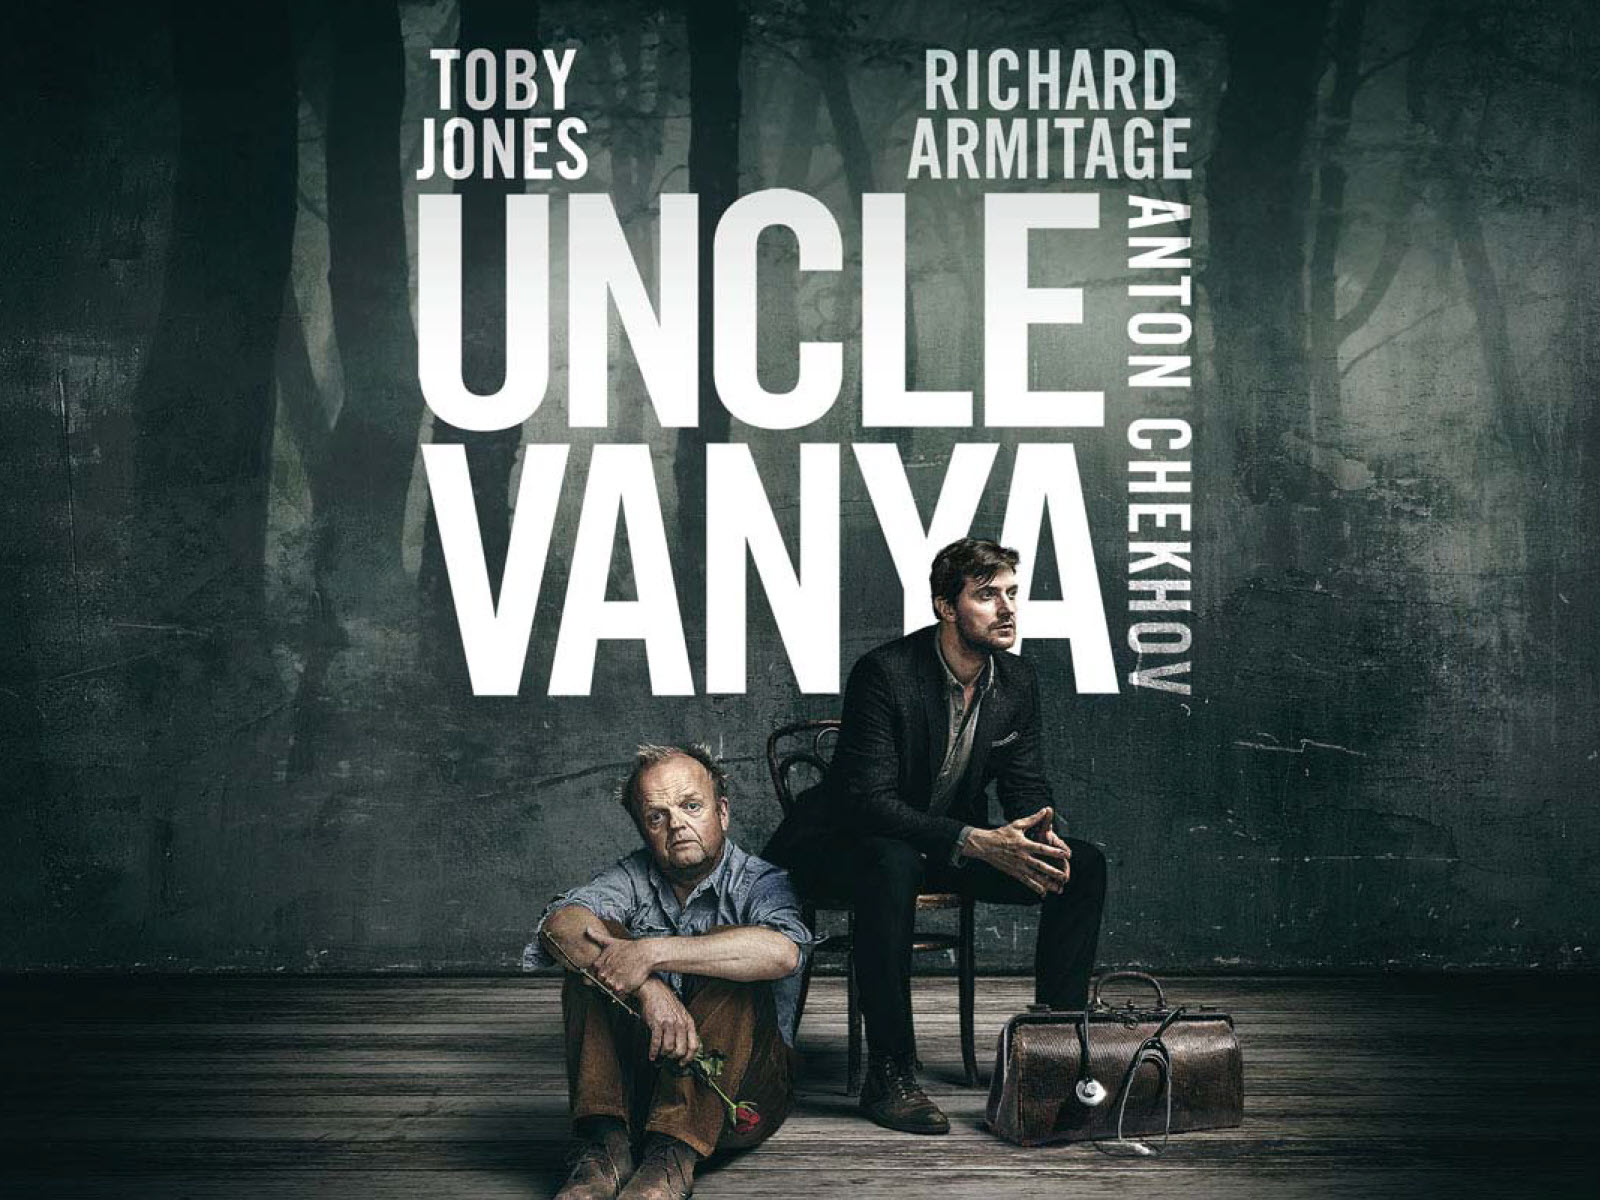 Full of tumultuous frustration and hidden passions, but brimming with hope and optimism for the future, Uncle Vanya is a must-see event for our times...